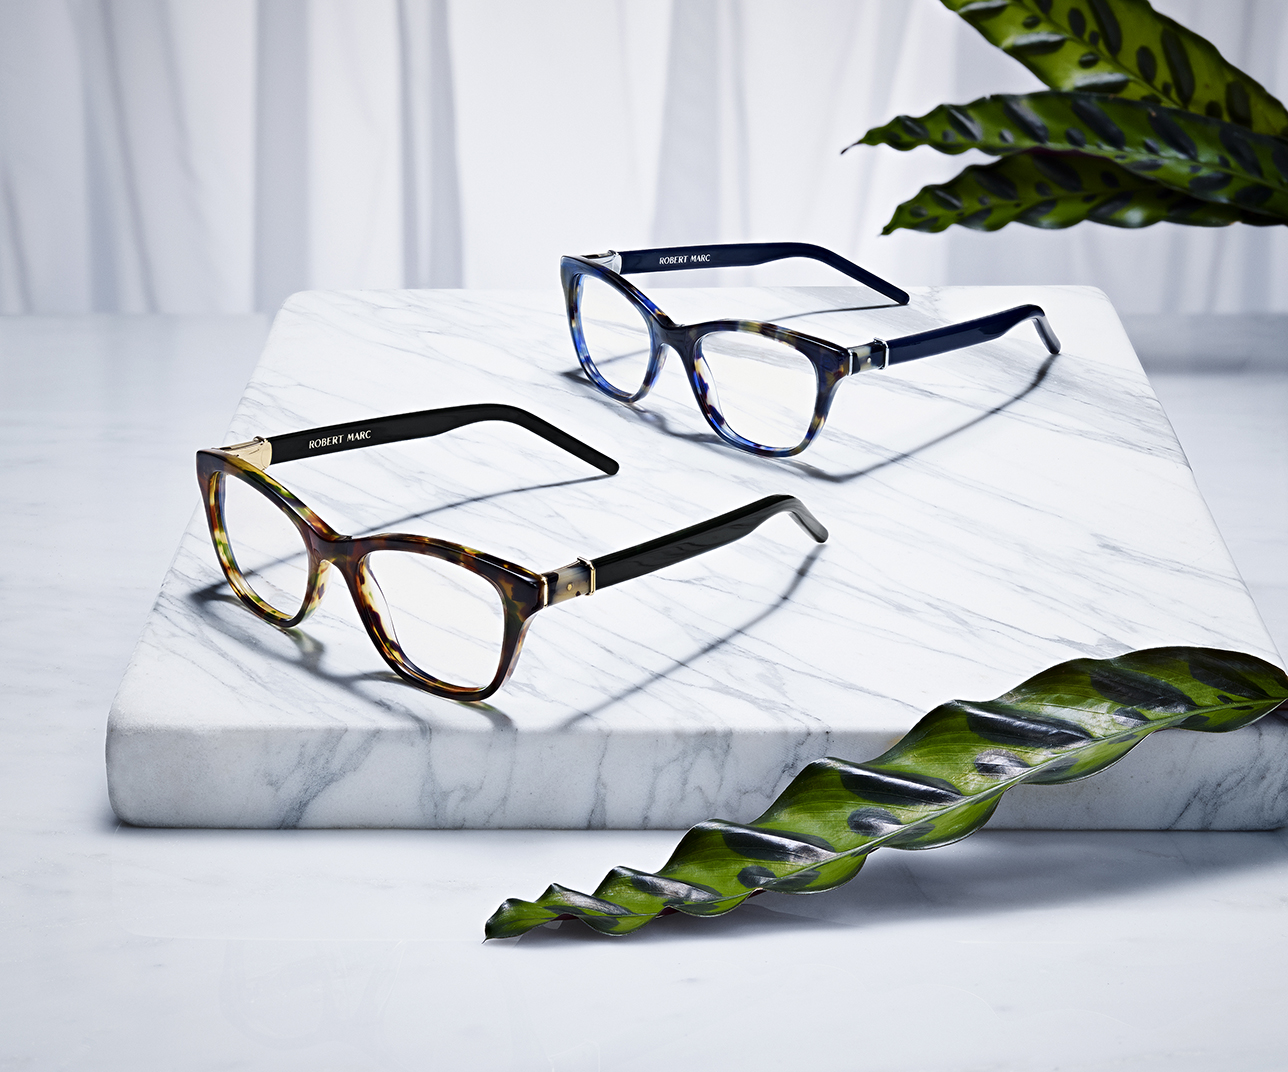 SUNGLASSES AND EYEWEAR BY ROBERT MARC SHOT ON MARBLE WITH PLANTS BY DAVID FILIBERTI